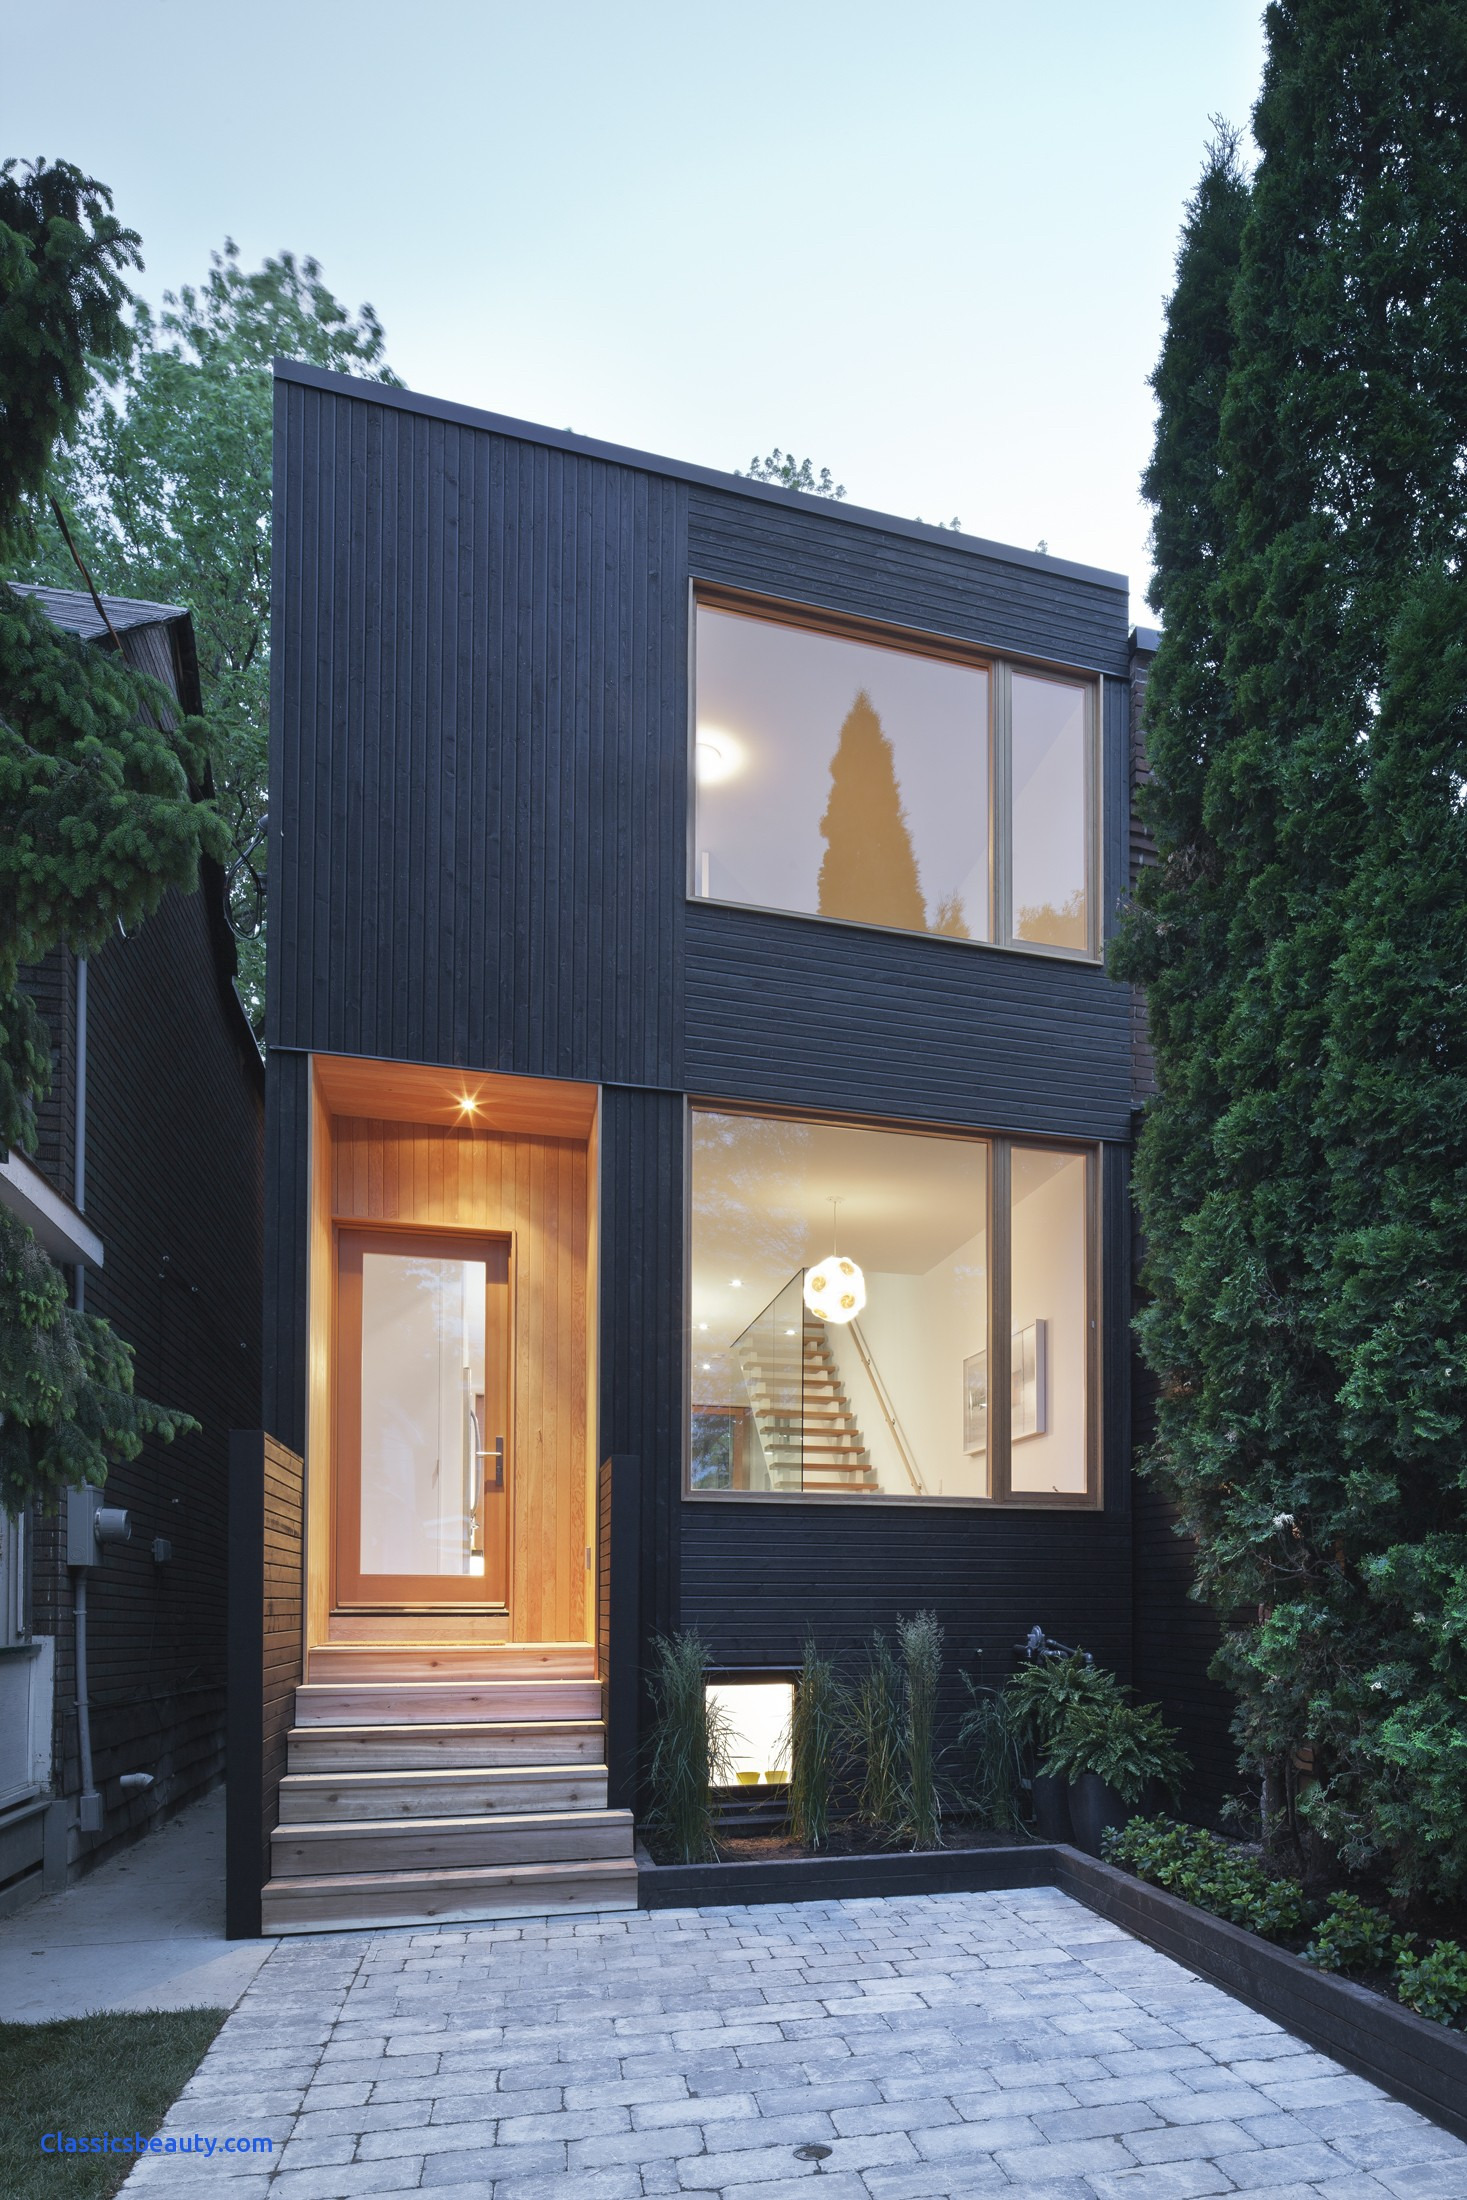 Most Affordable Homes to Build Luxury Small Affordable Homes Elegant top Modular Inexpensive